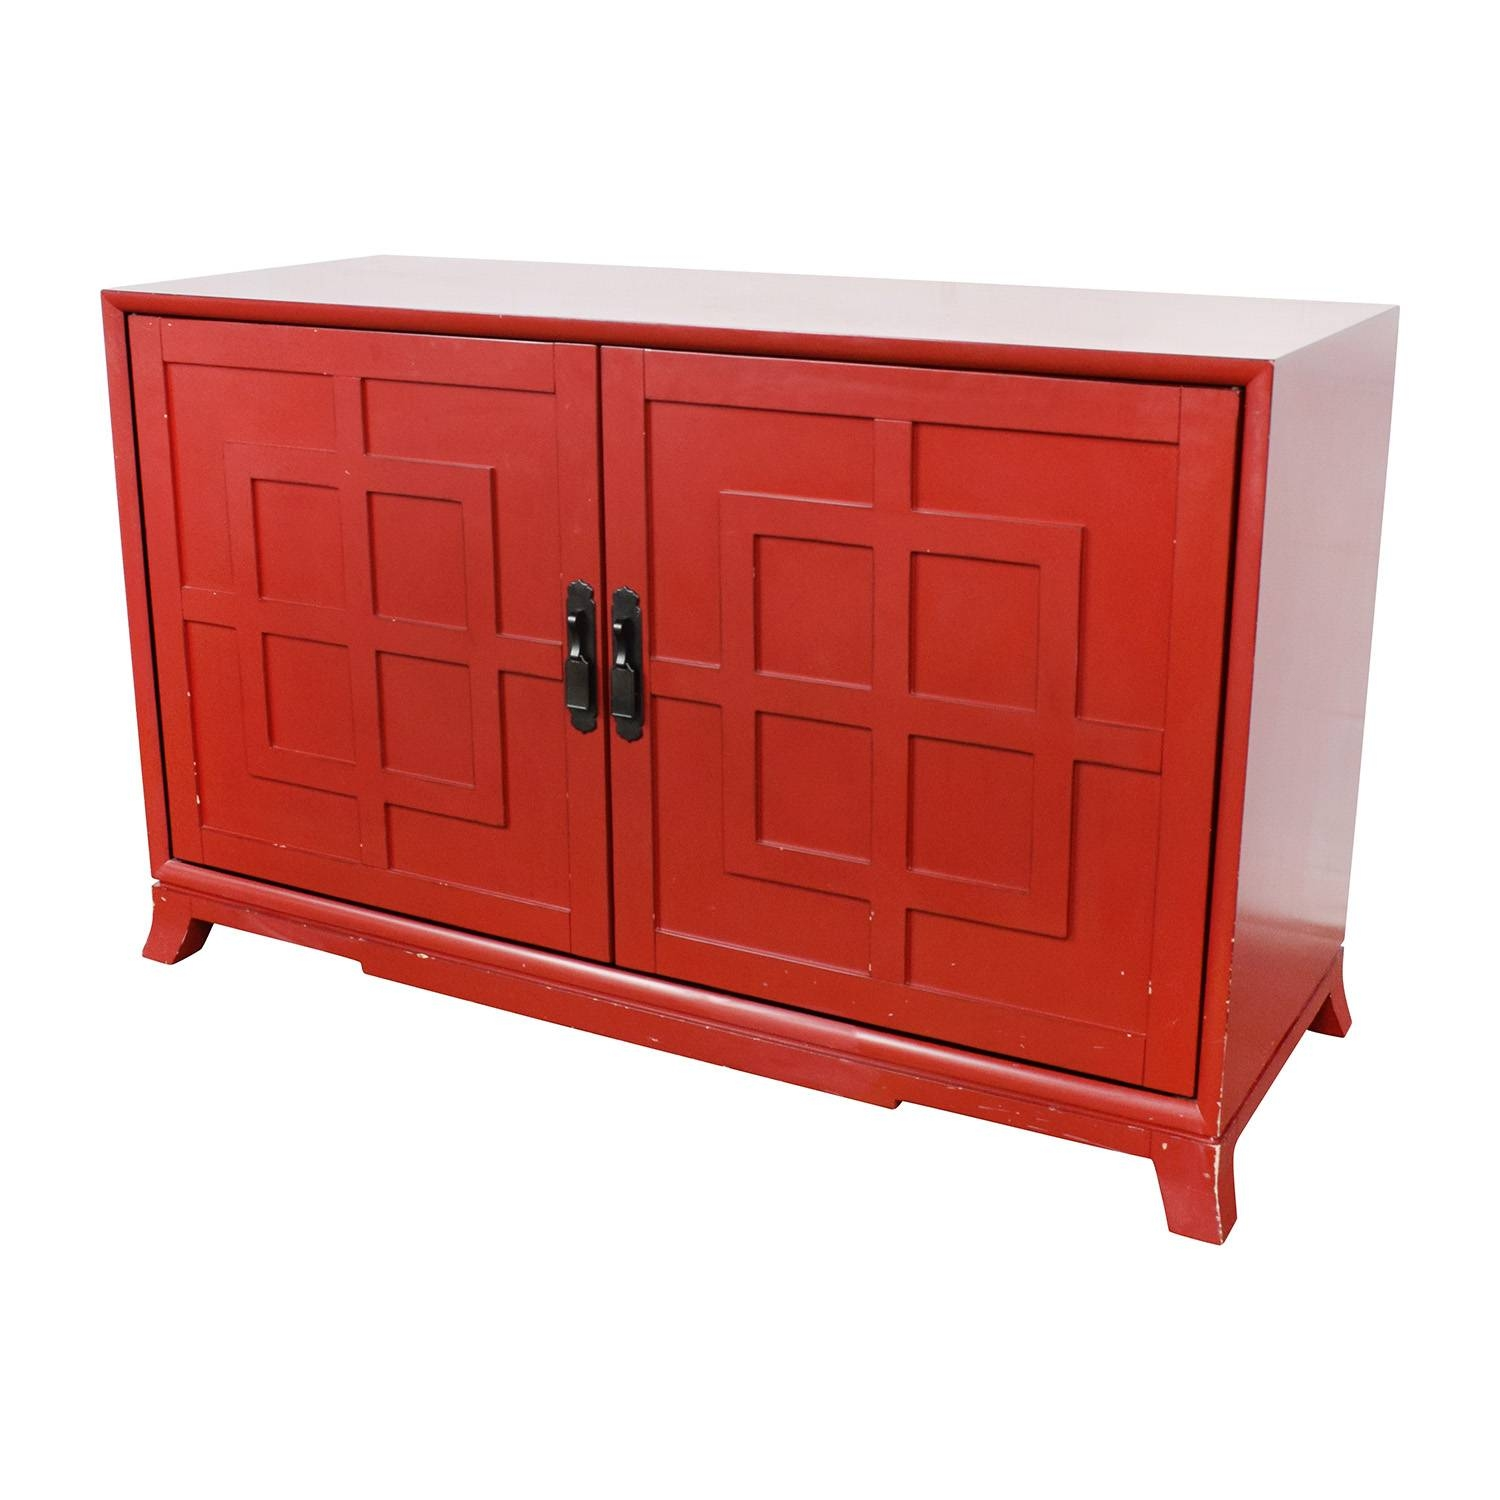 83% Off - Crate And Barrel Crate & Barrel Red Media Storage / Storage within Crate and Barrel Sideboards (Image 9 of 15)